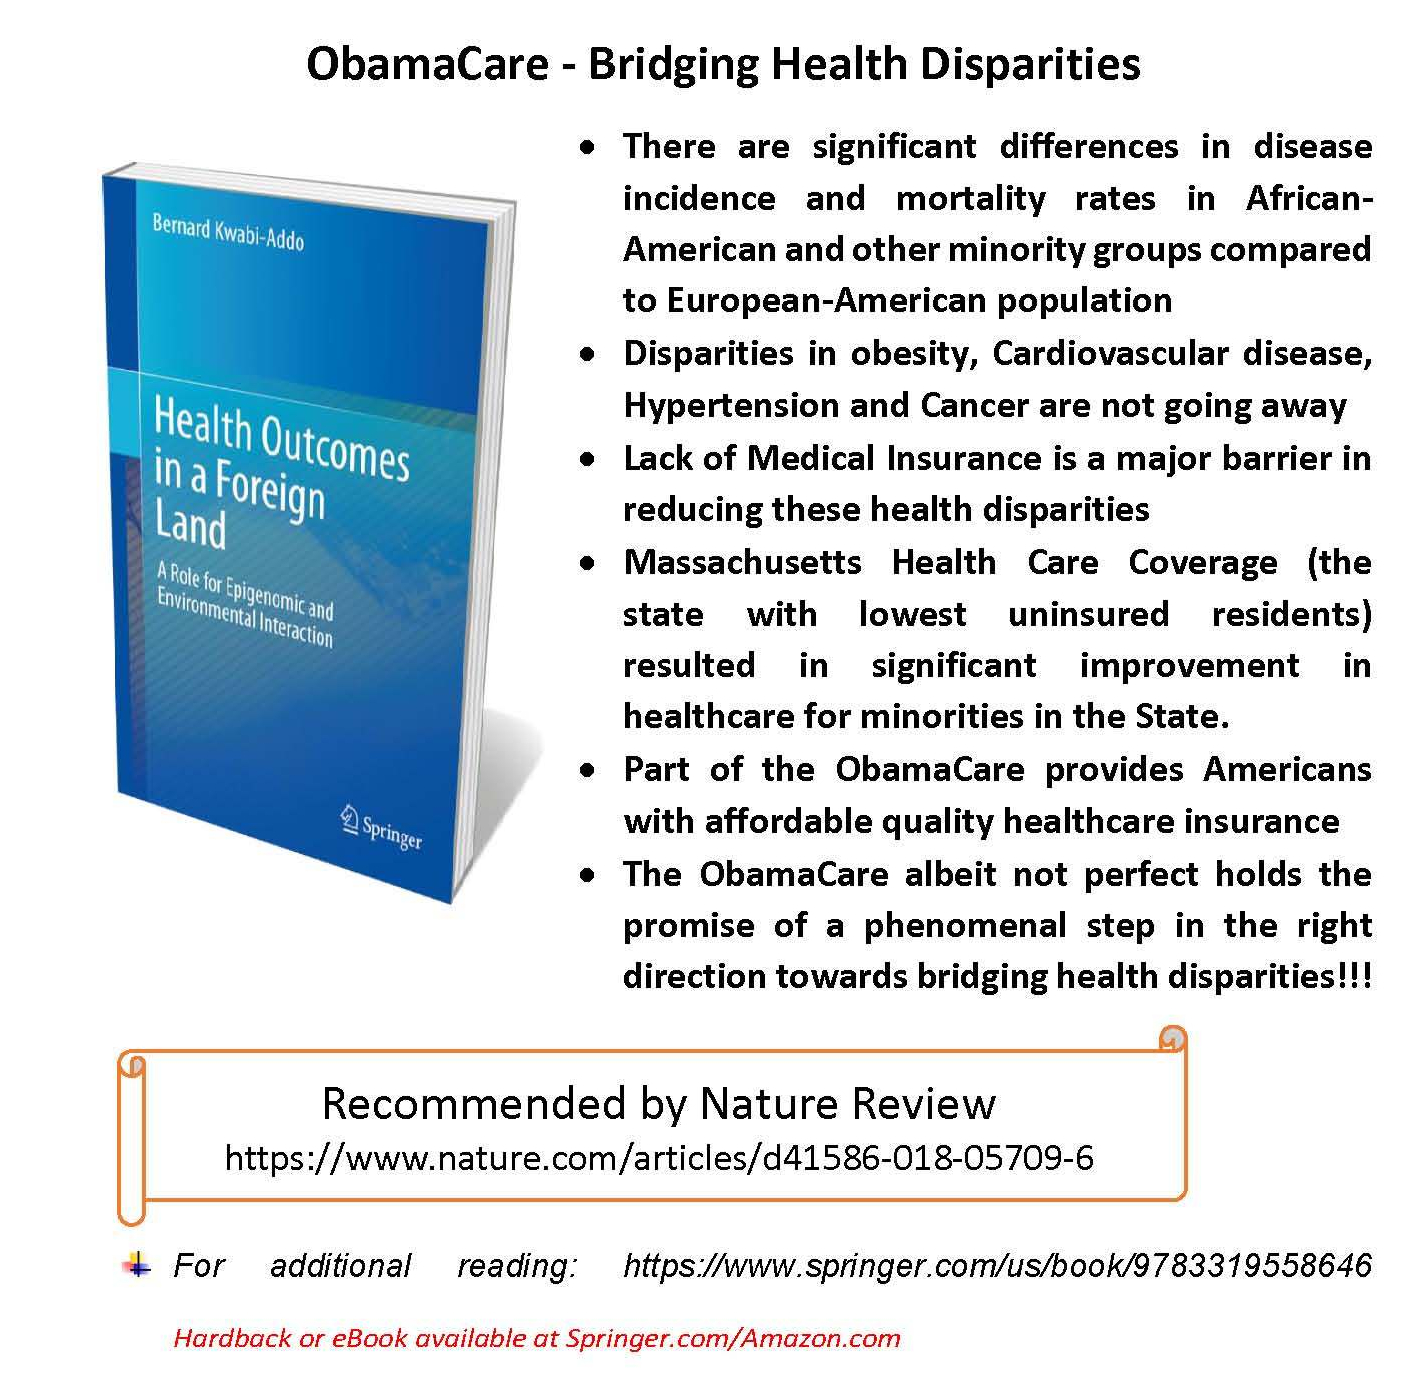 obamacare- bridging health disparities